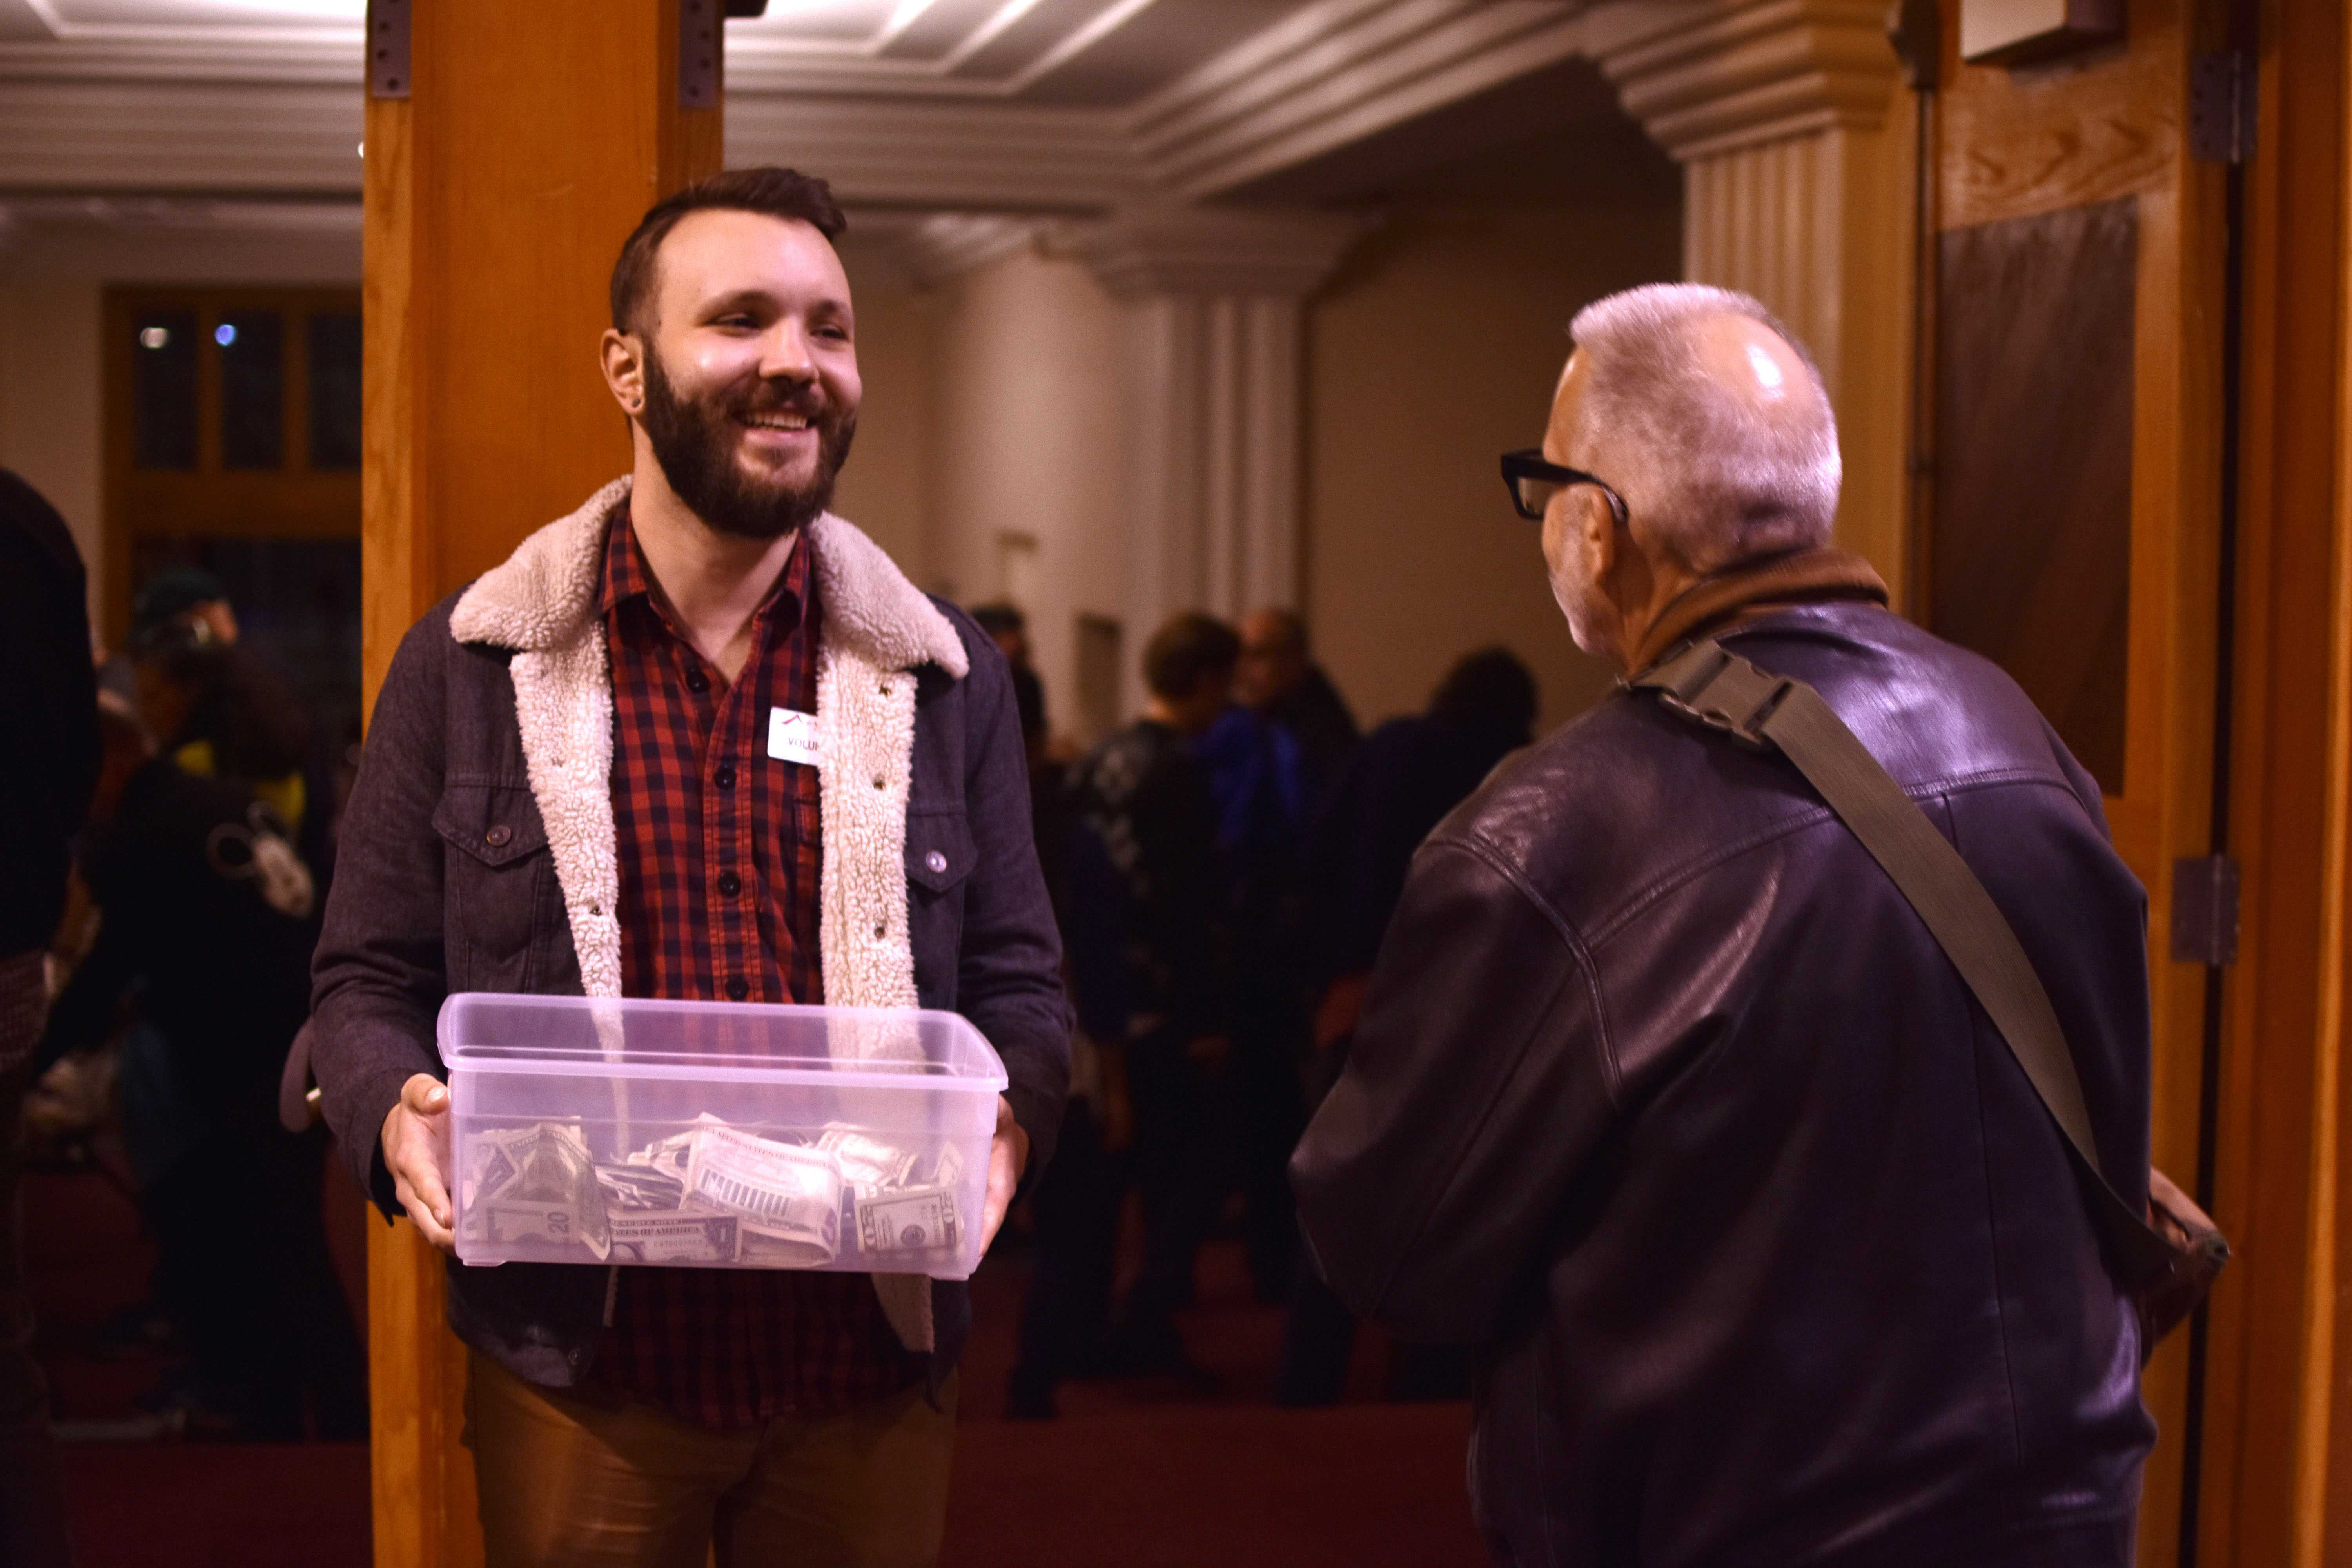 Mike Mykolaichuk collects money in a donation box as guests leave the benefit concert to fund Campfire disaster relief for Paradise at Bahá'í Center of San Francisco on Sunday, Jan. 27.